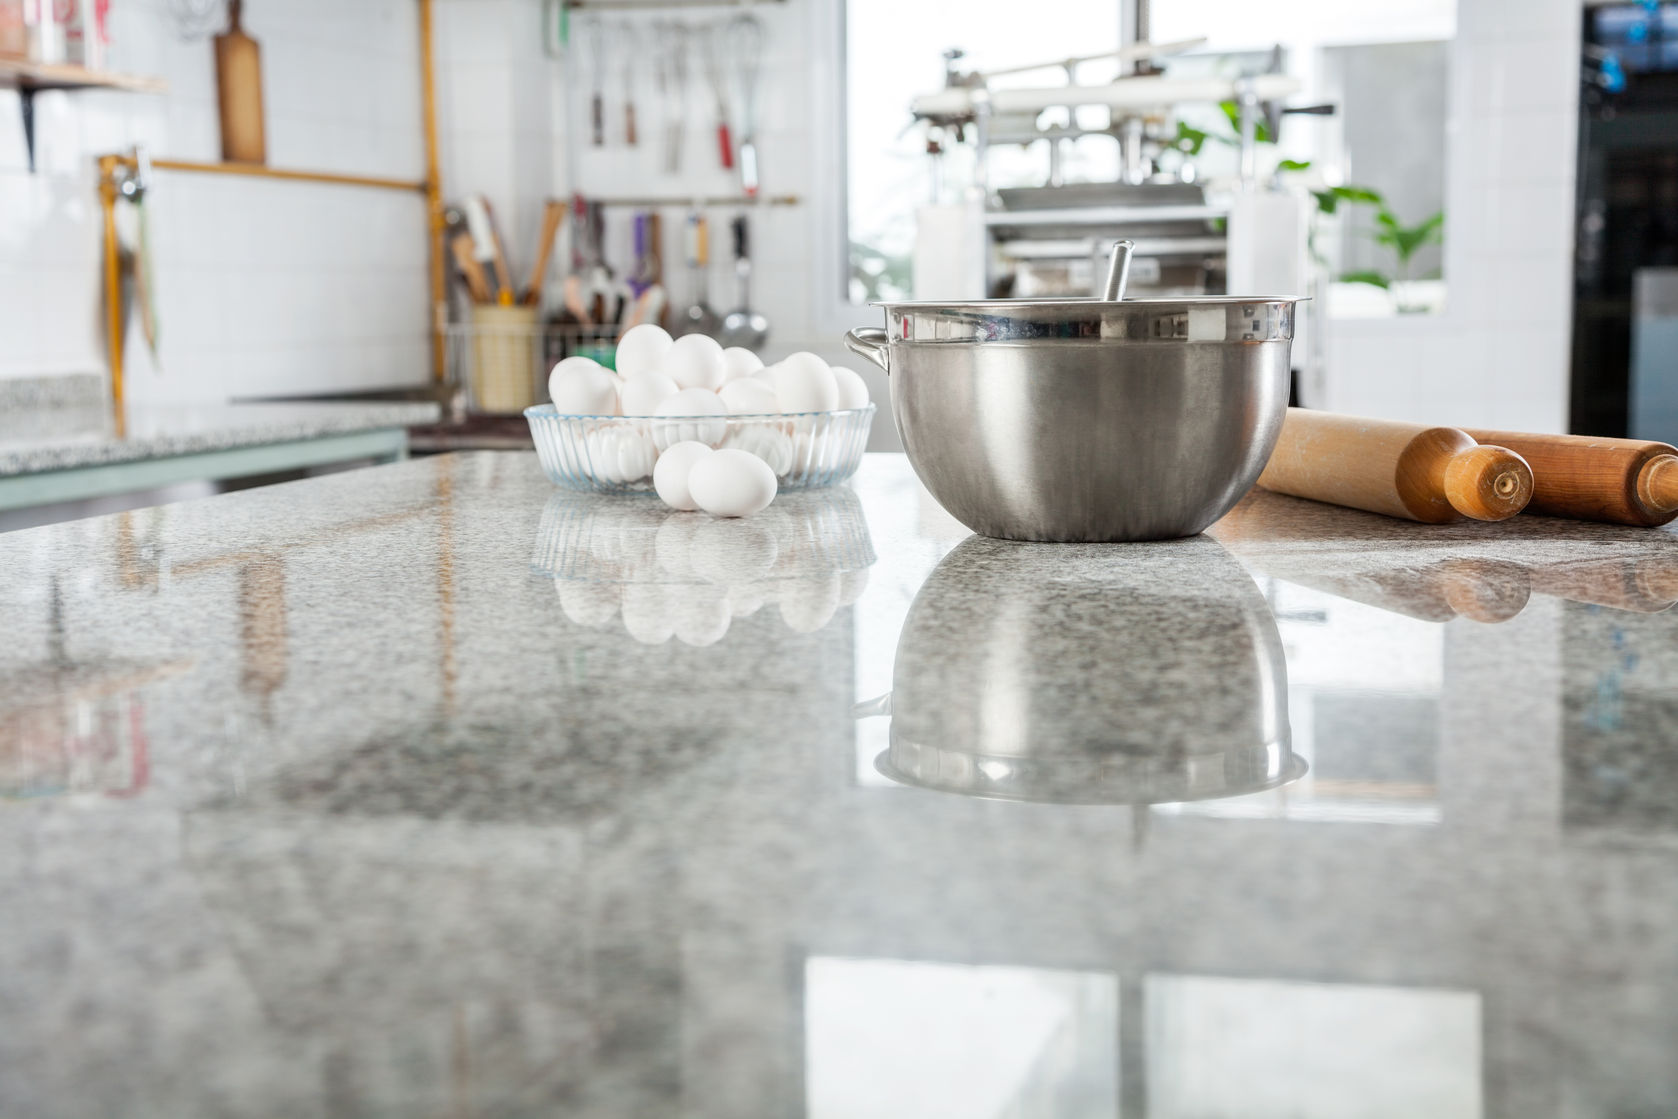 Polishing Corian Countertops Care And Maintenance Tips For Solid Surface Countertops Beaver